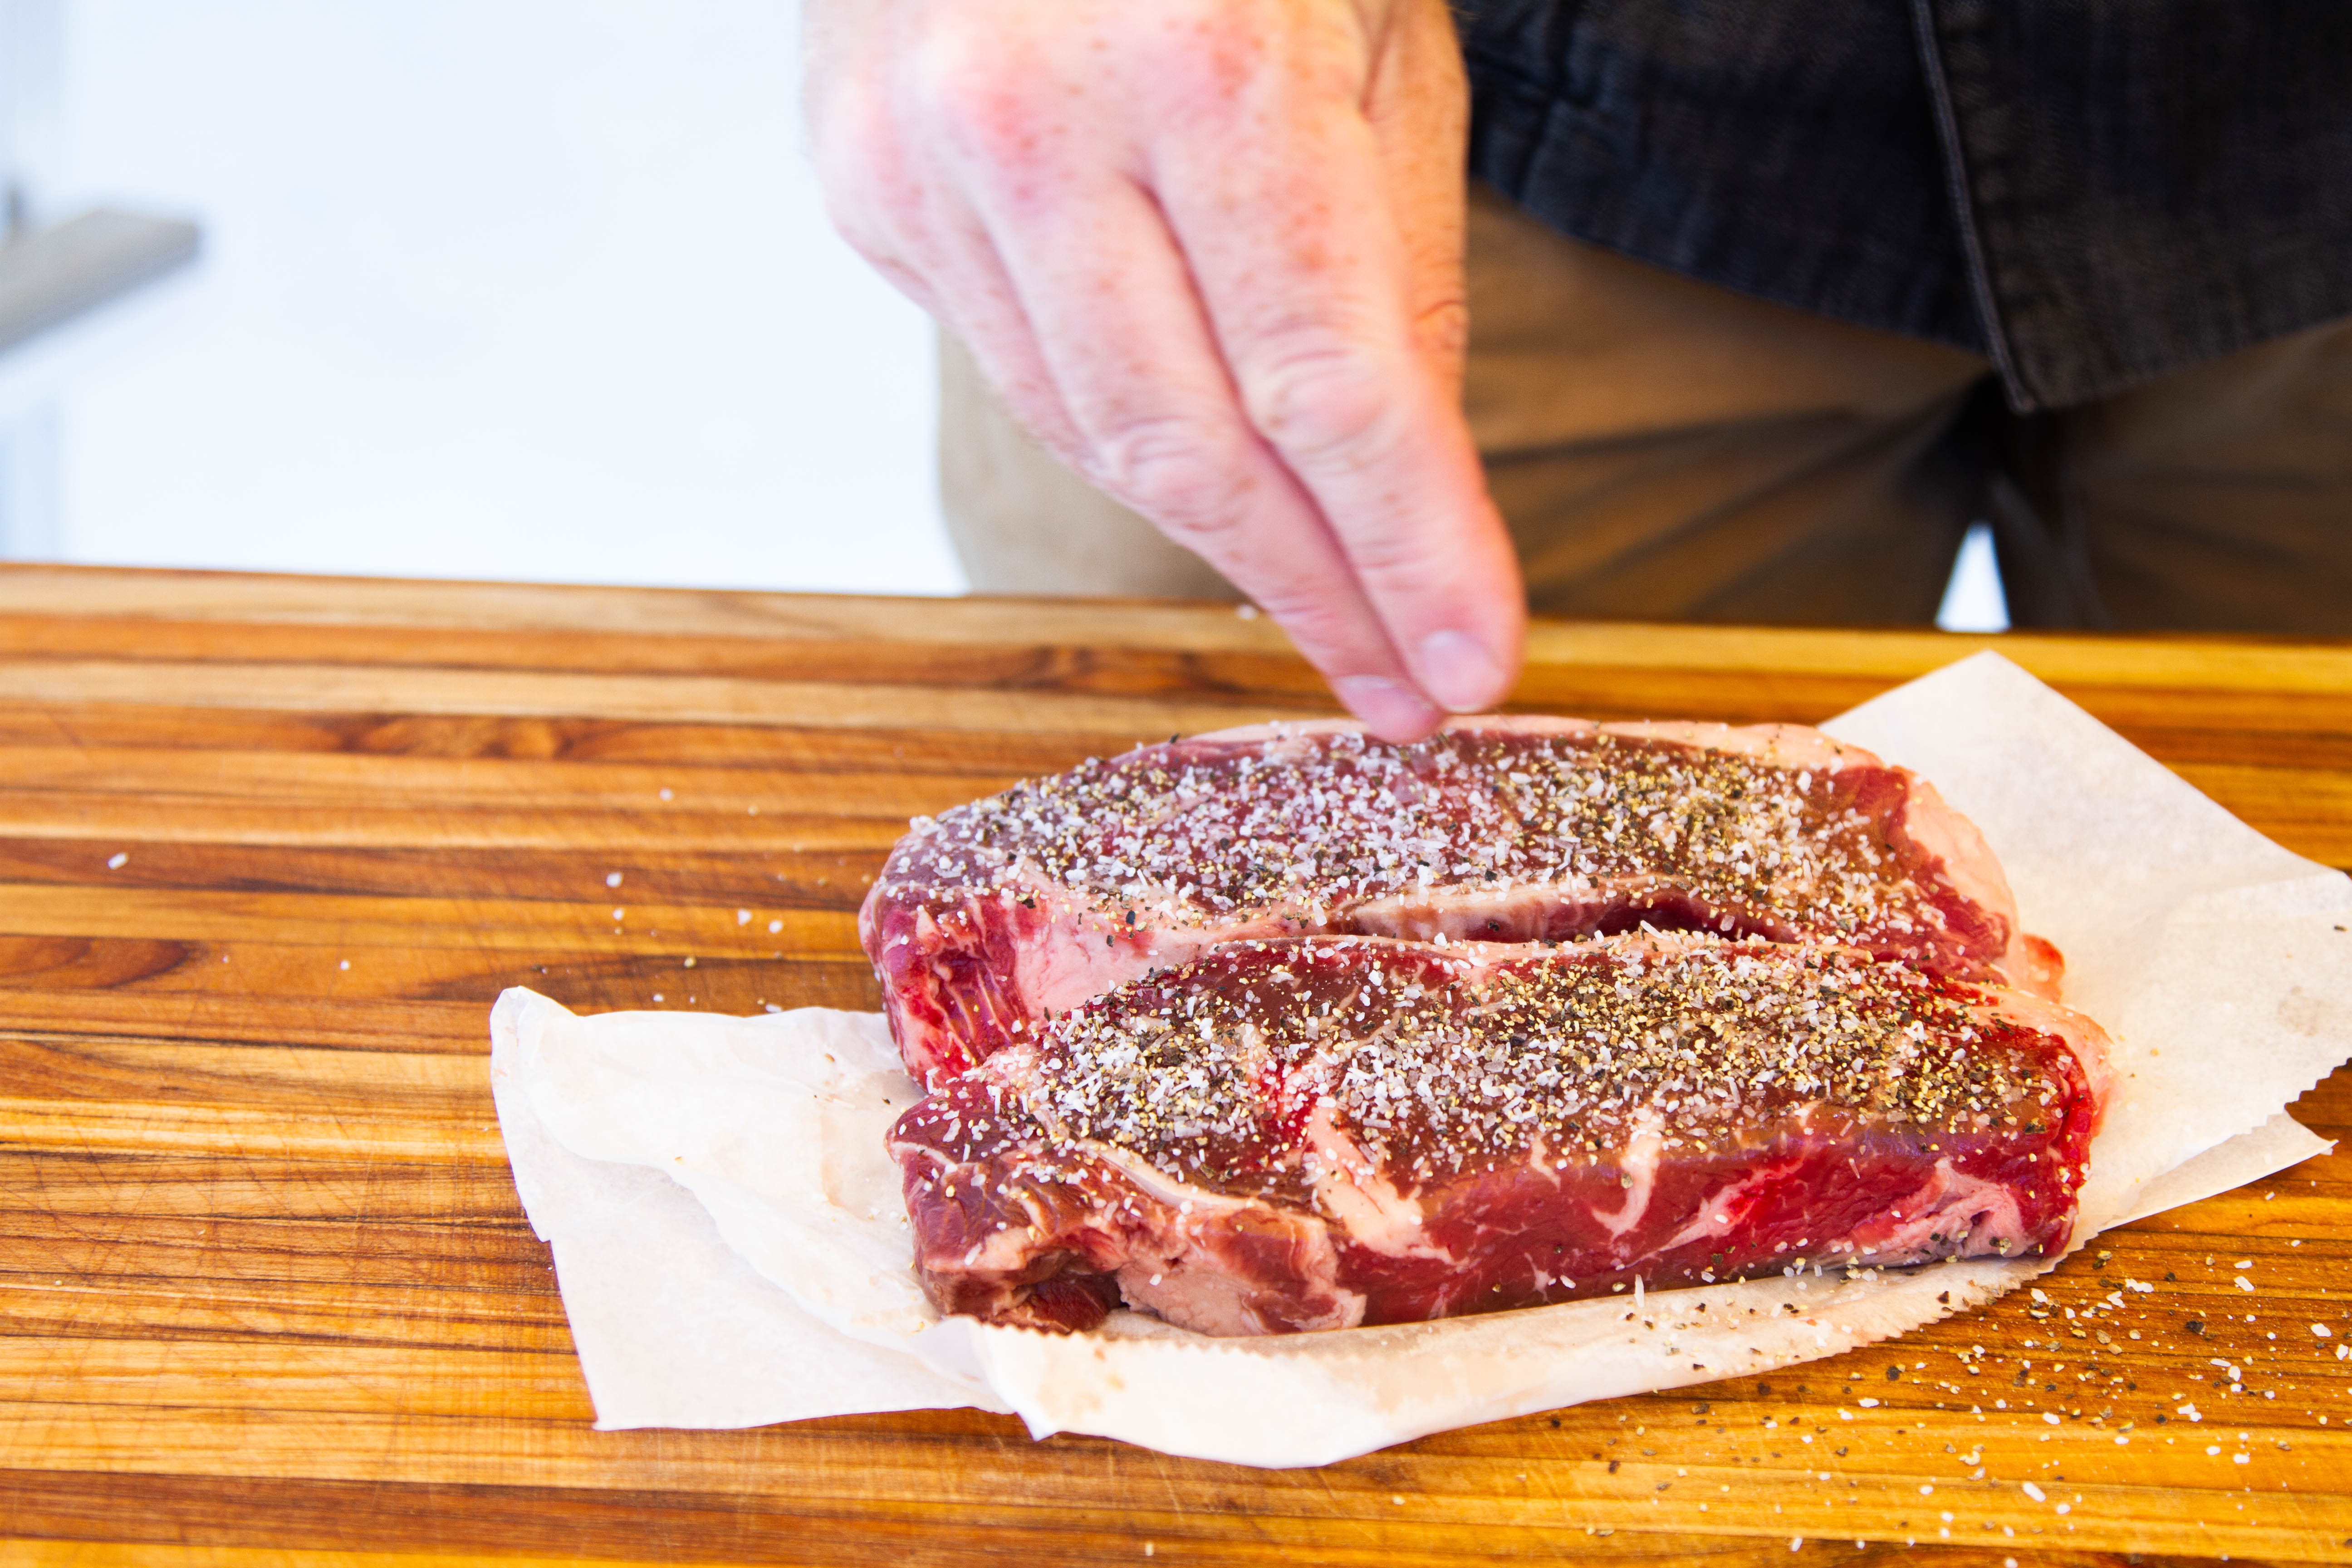 That new york strip loin grilling instructions can consult